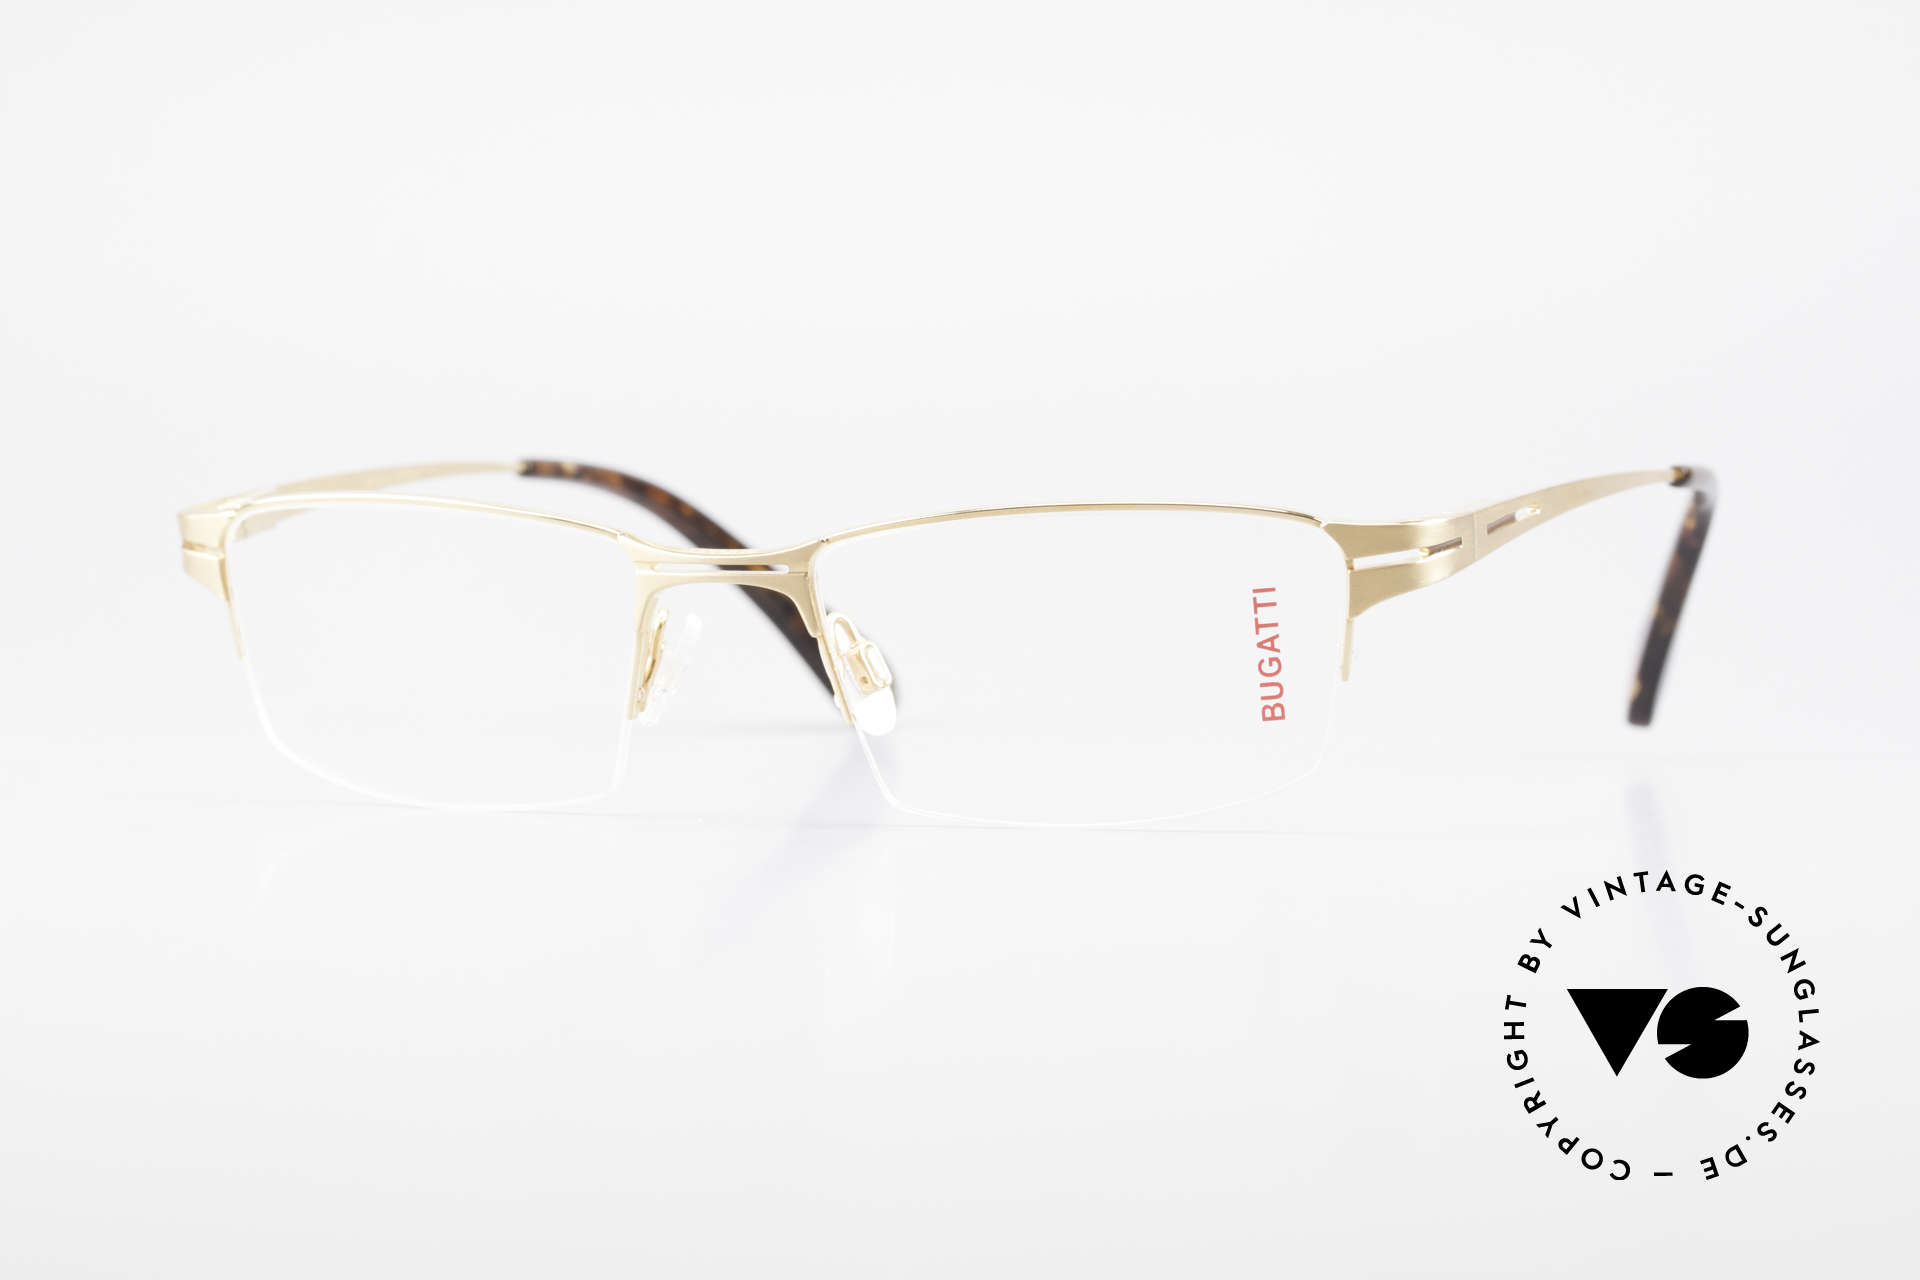 Bugatti 456 Nylor Titan Frame Gold-Plated, original, vintage NYLOR eyeglass-frame by Bugatti, Made for Men